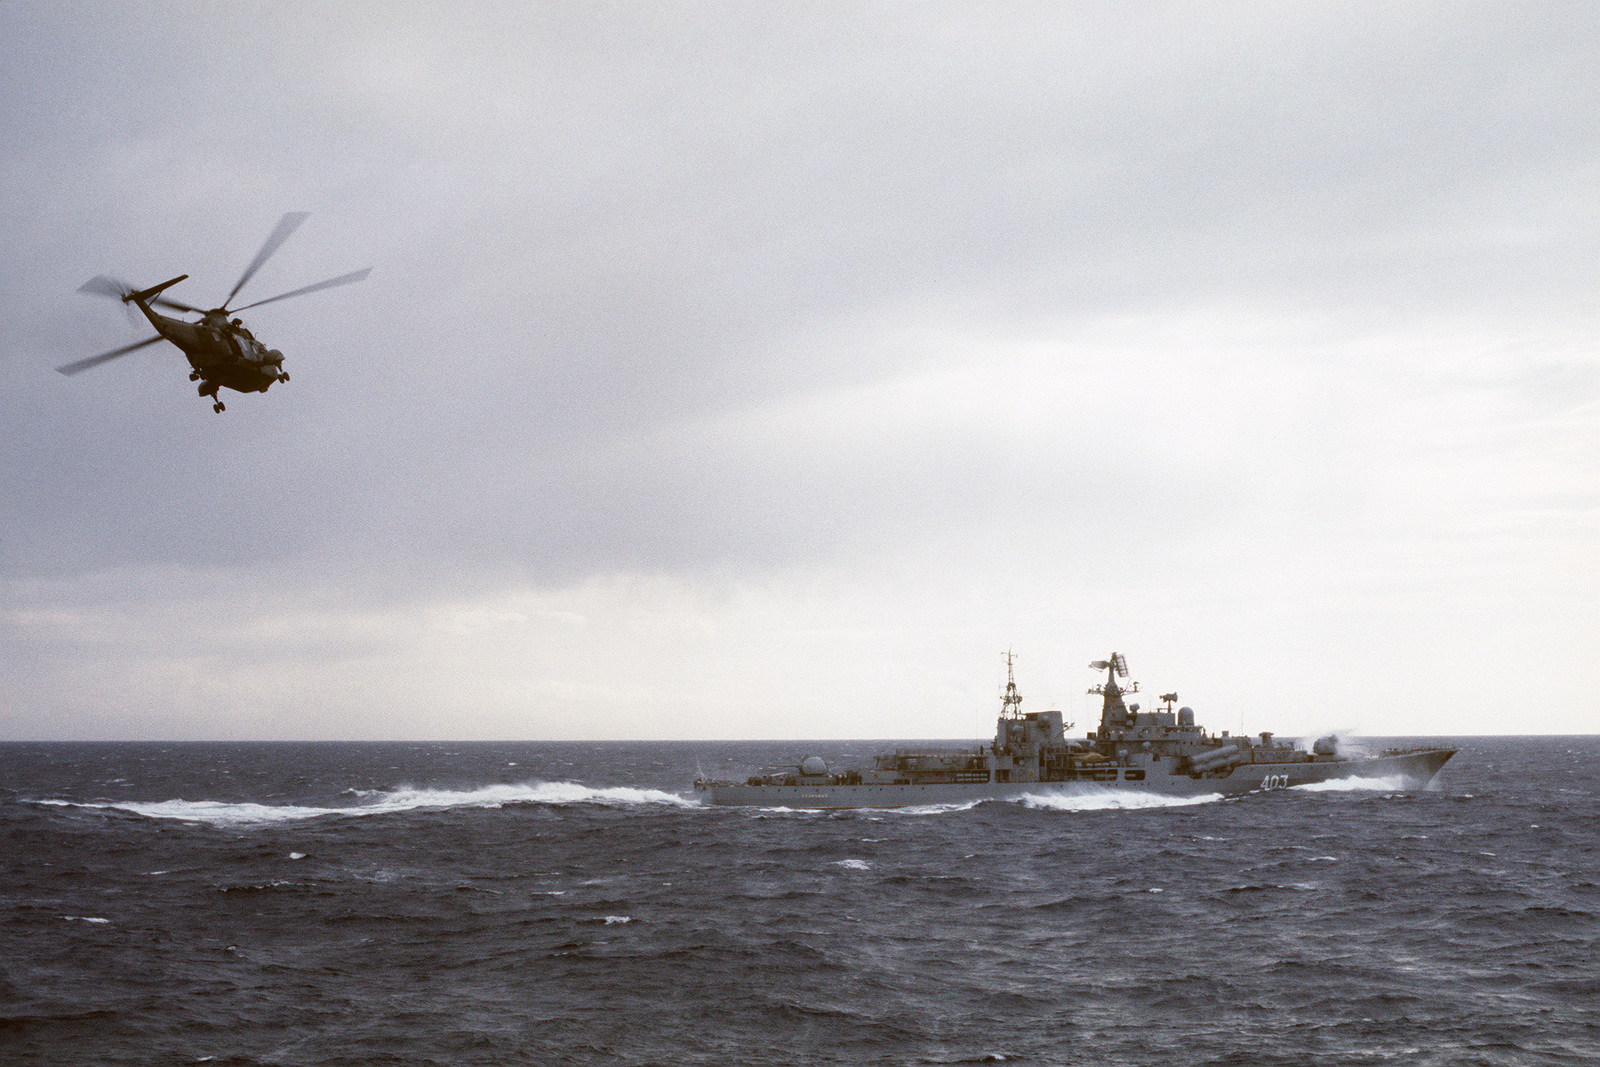 A starboard view of a Soviet Sovremennyy class guided missile destroyer underway as a US Navy SH-3 Sea King helicopter approaches the ship